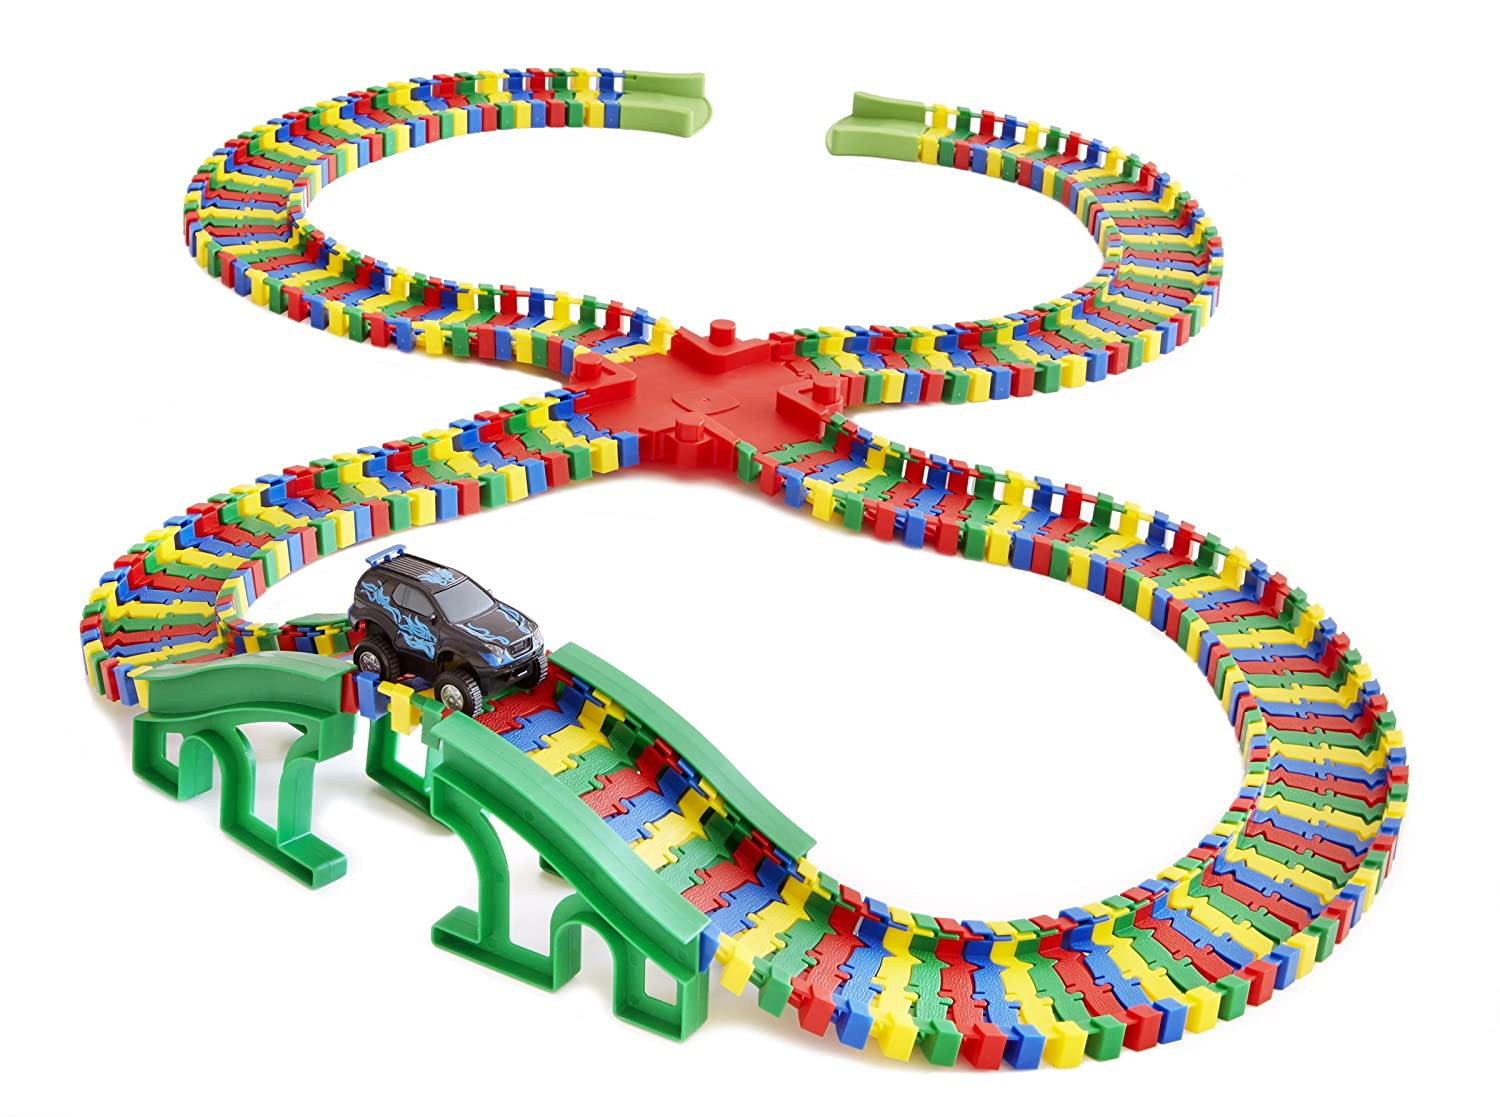 Buy Discovery Toys Zip Track Online at Low Prices in India - Amazon.in